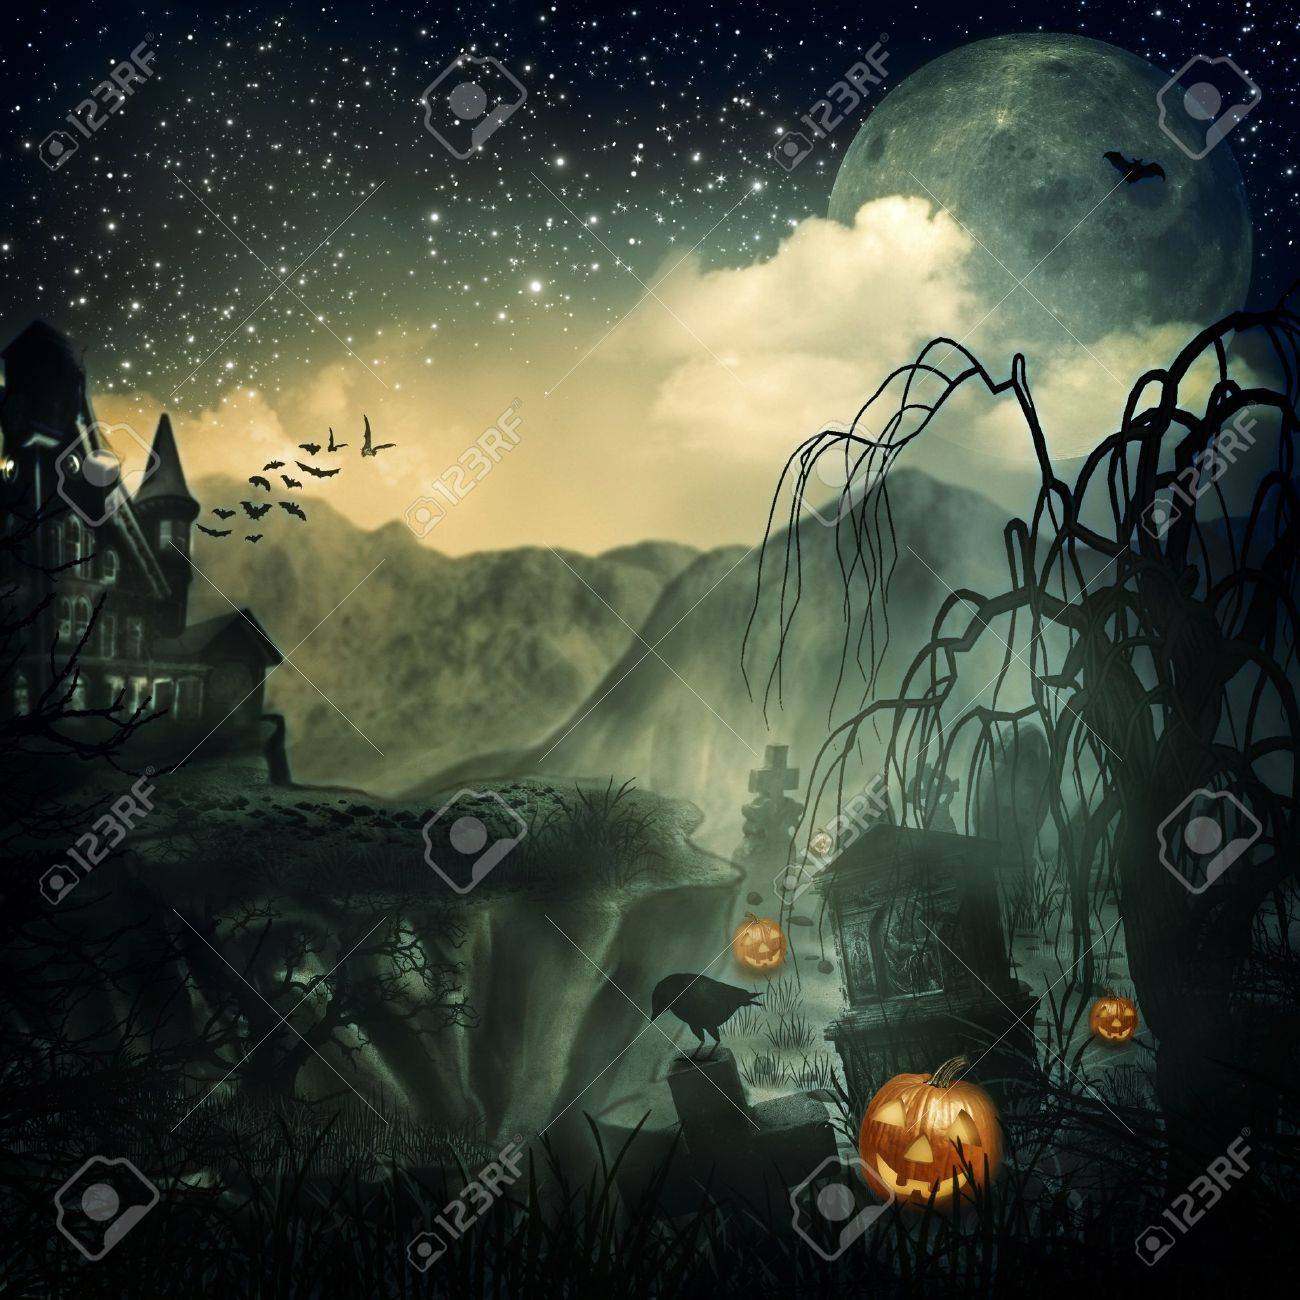 Scary Movie  Abstract halloween backgrounds for your design Stock Photo - 16103989